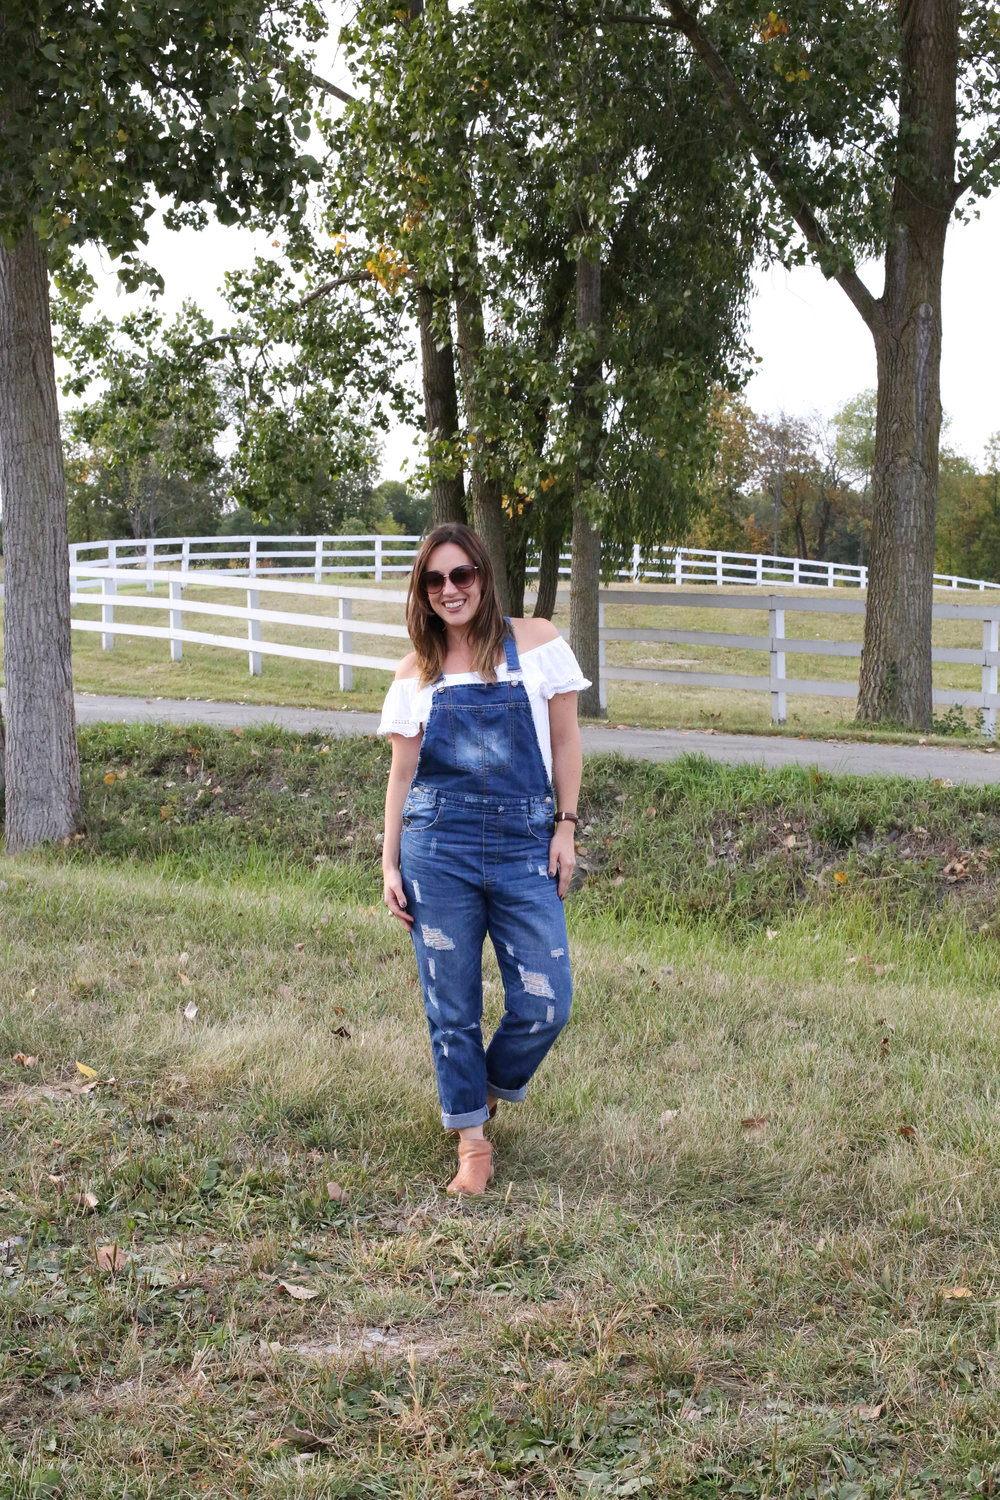 3 ways to style overalls, overall outfit, off the shoulder top and overalls, overalls and booties, white shirt and overalls, overall outfit